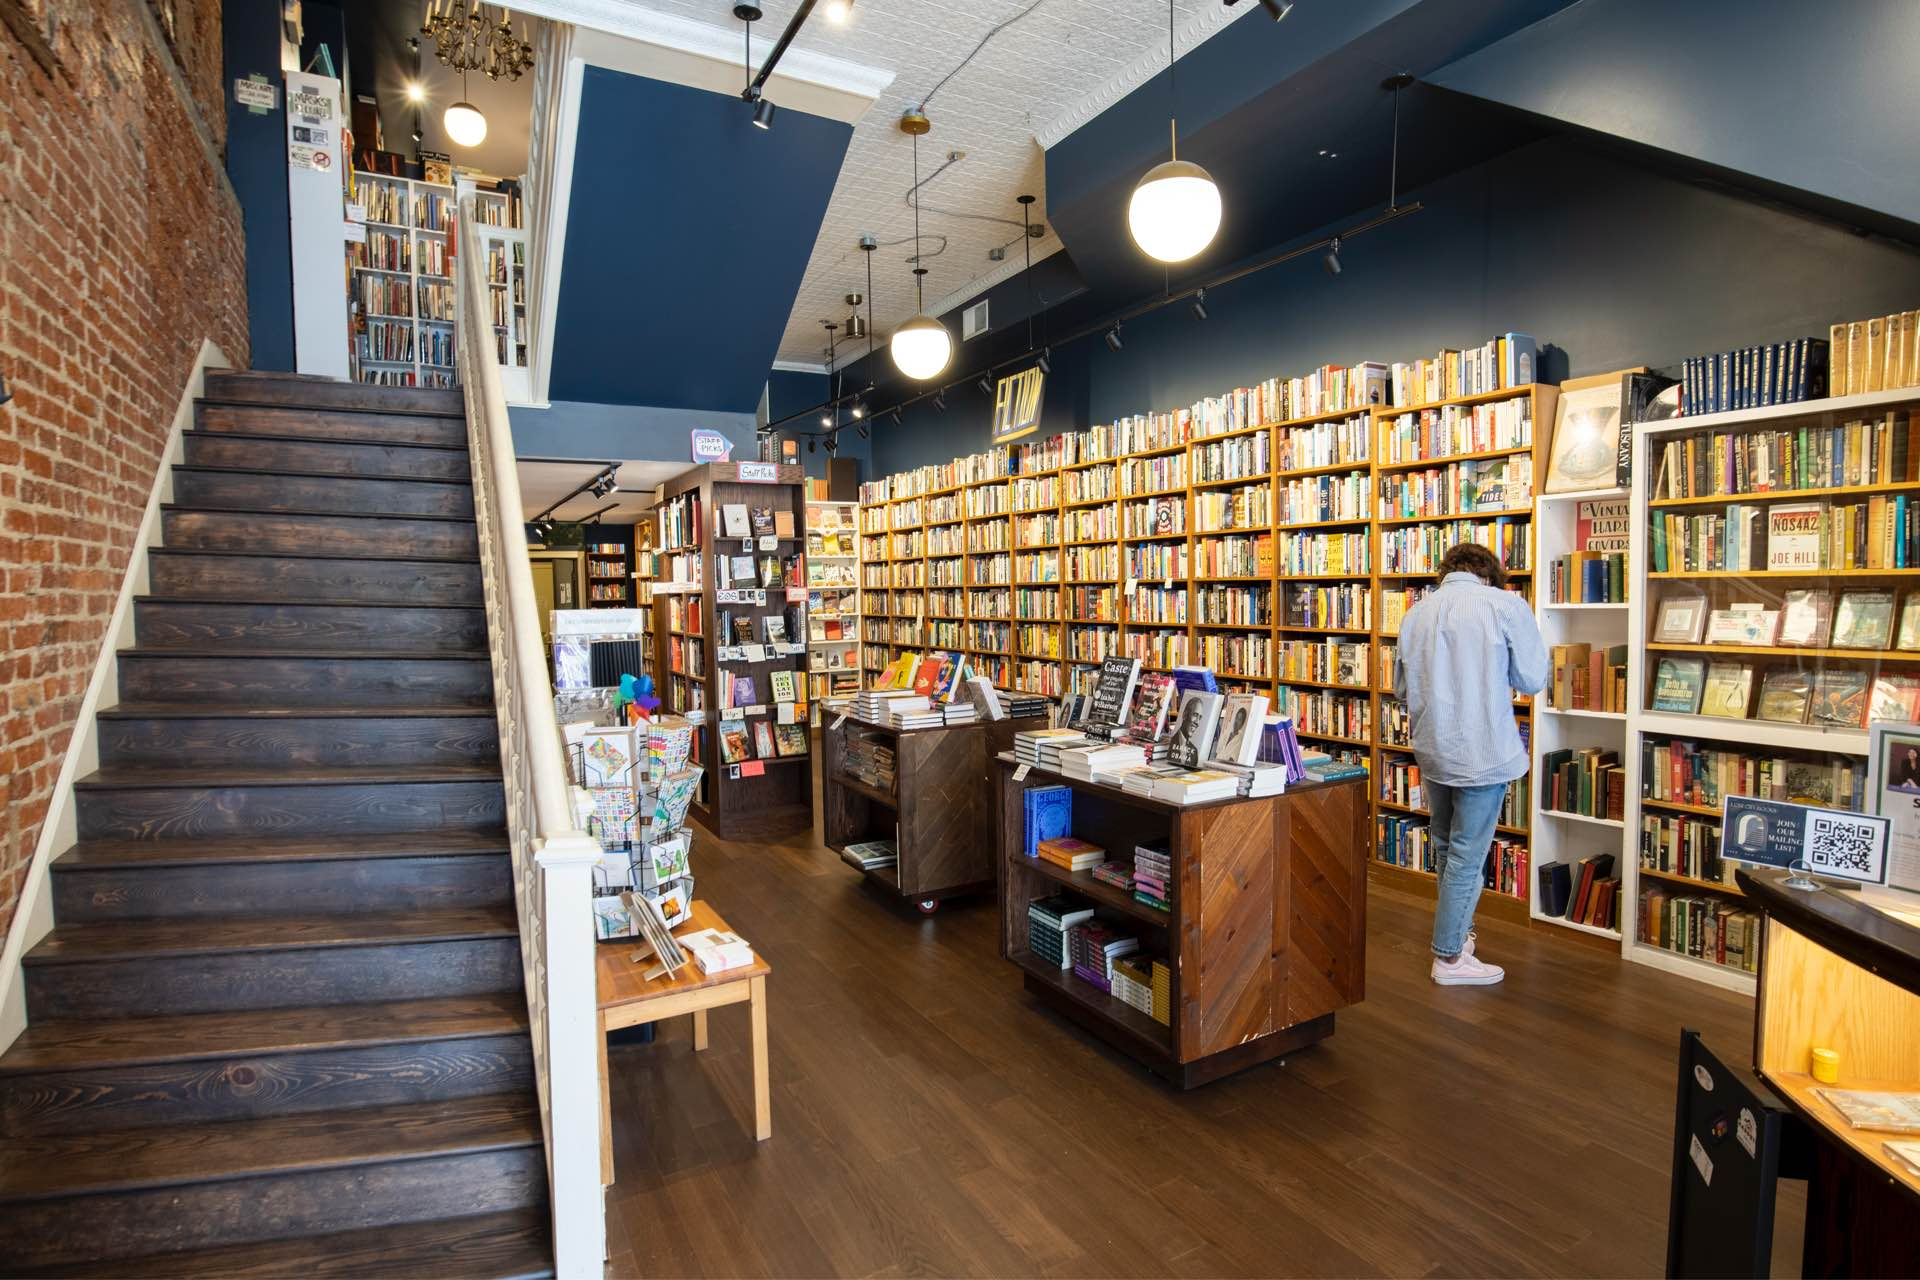 Nearby independent book store, Lost City Books